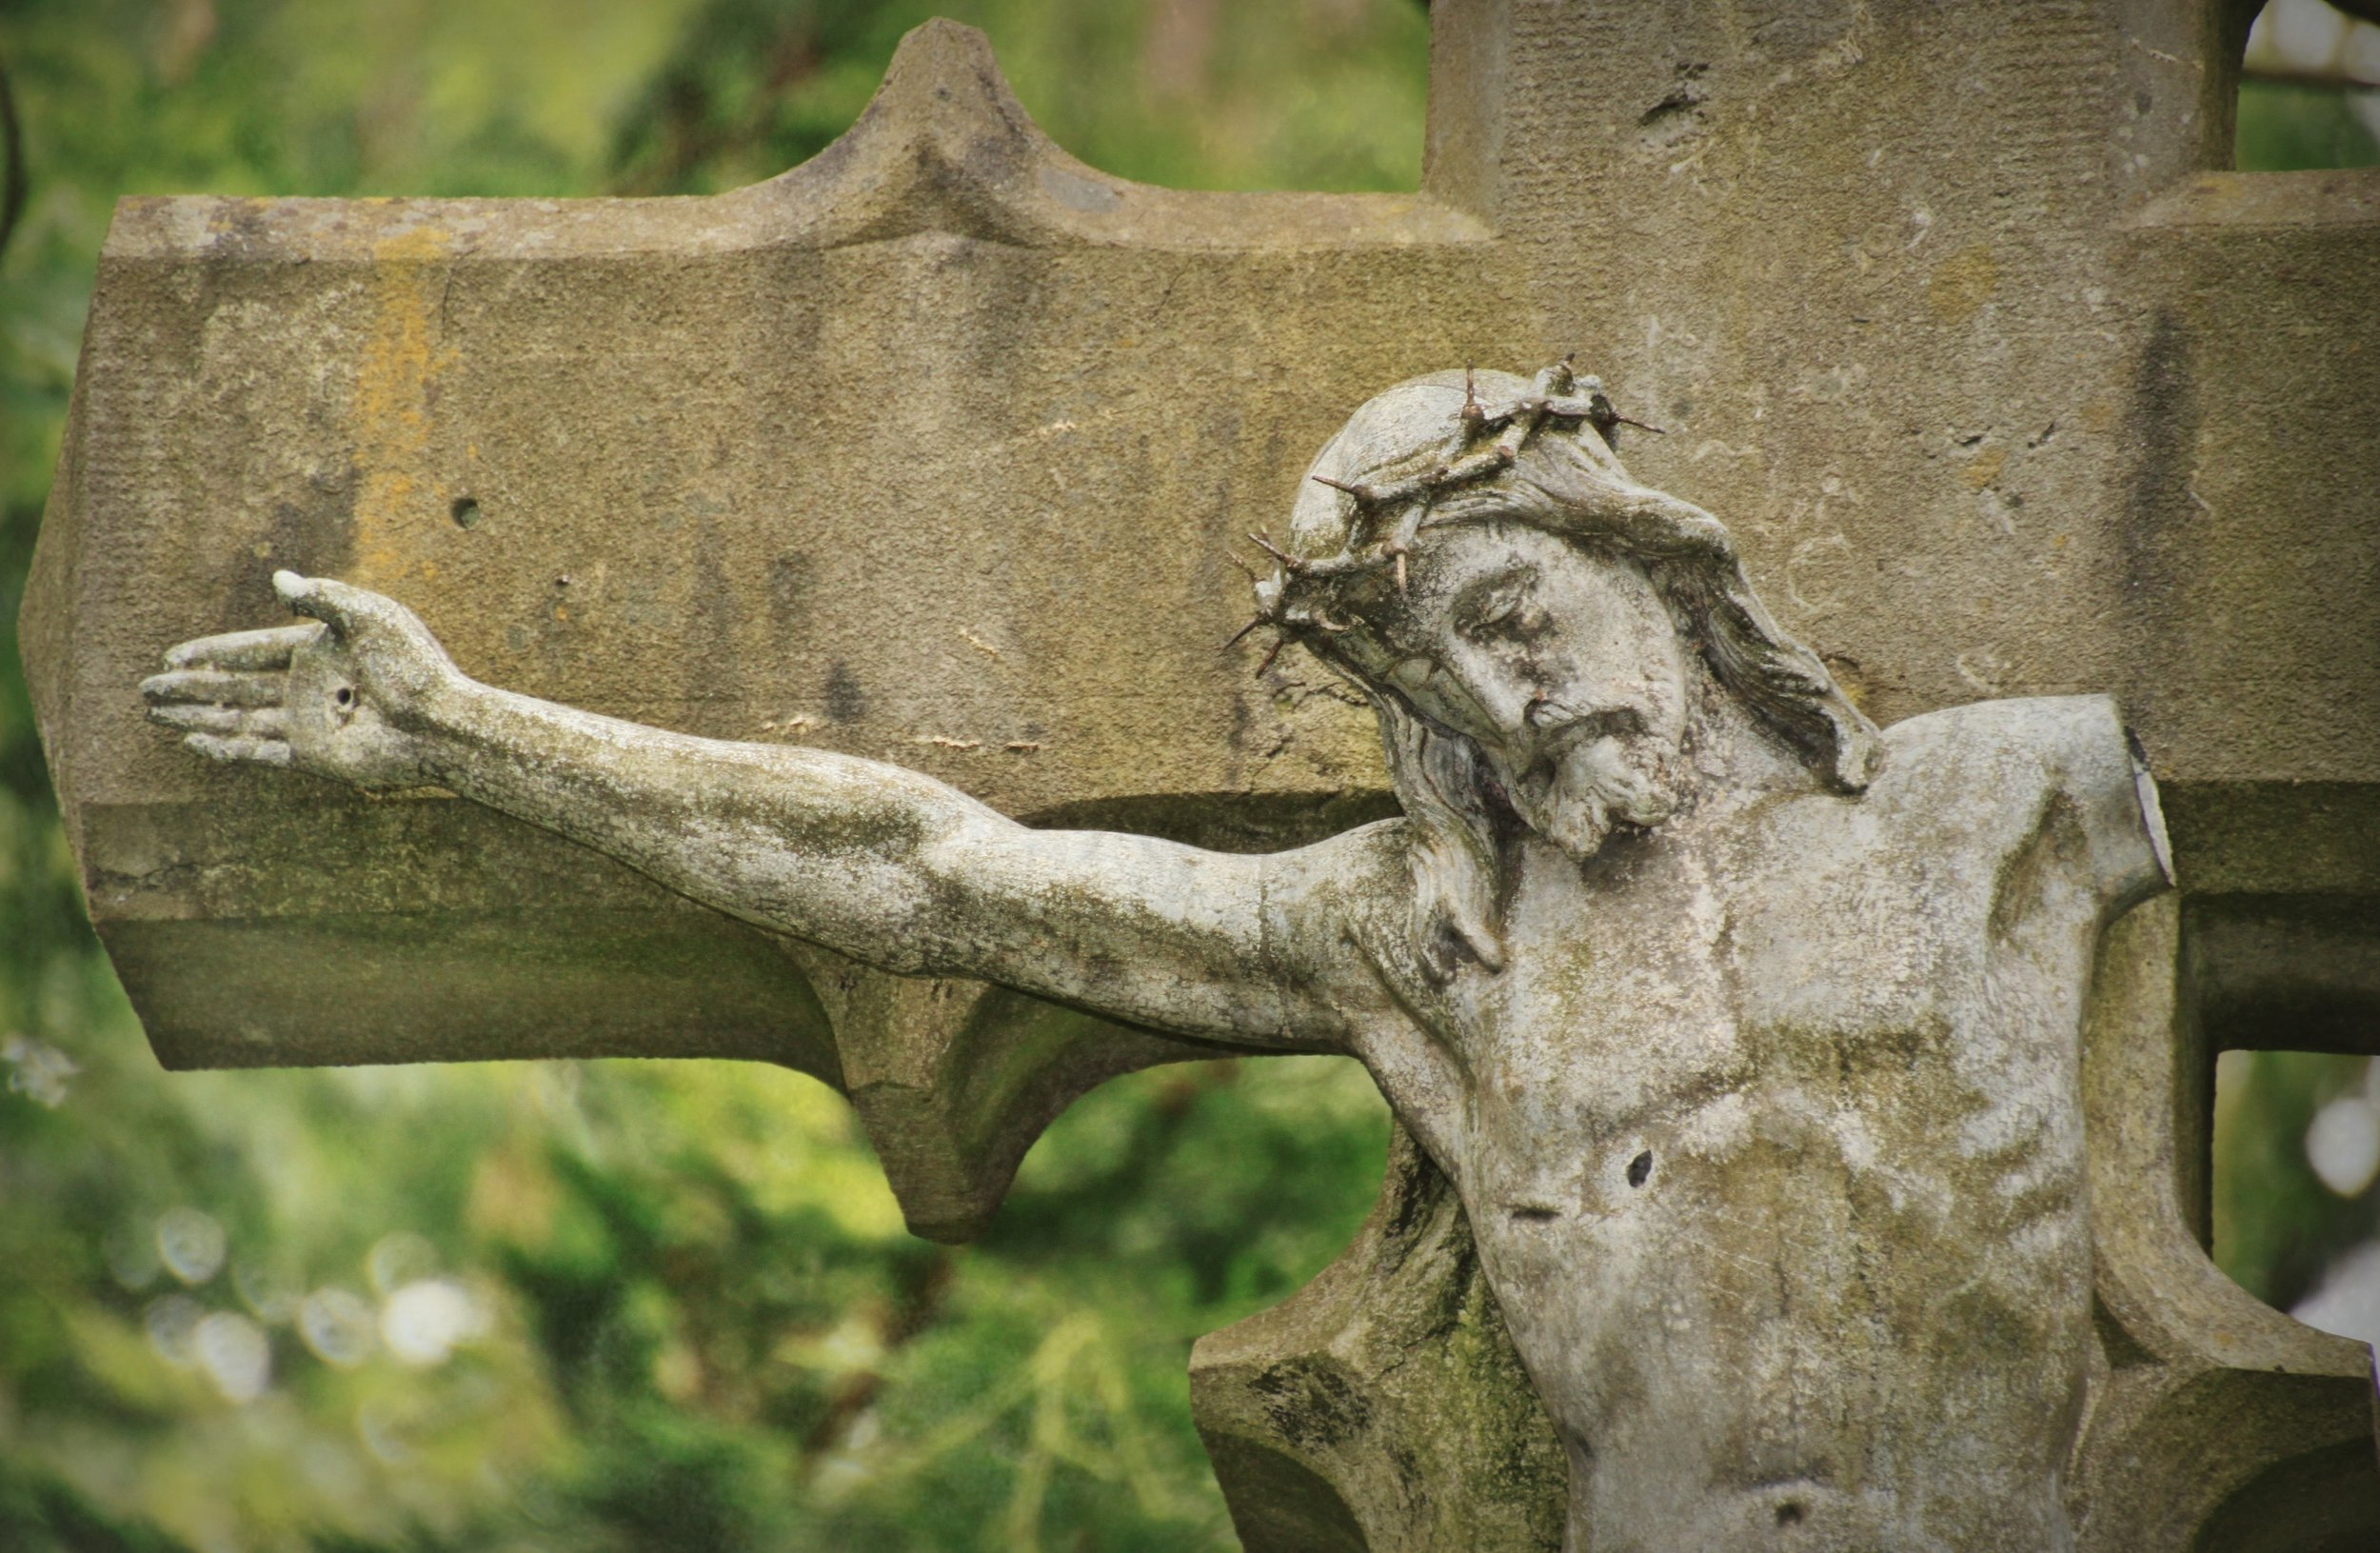 Atonement Theology - The Meaning of Jesus' Death